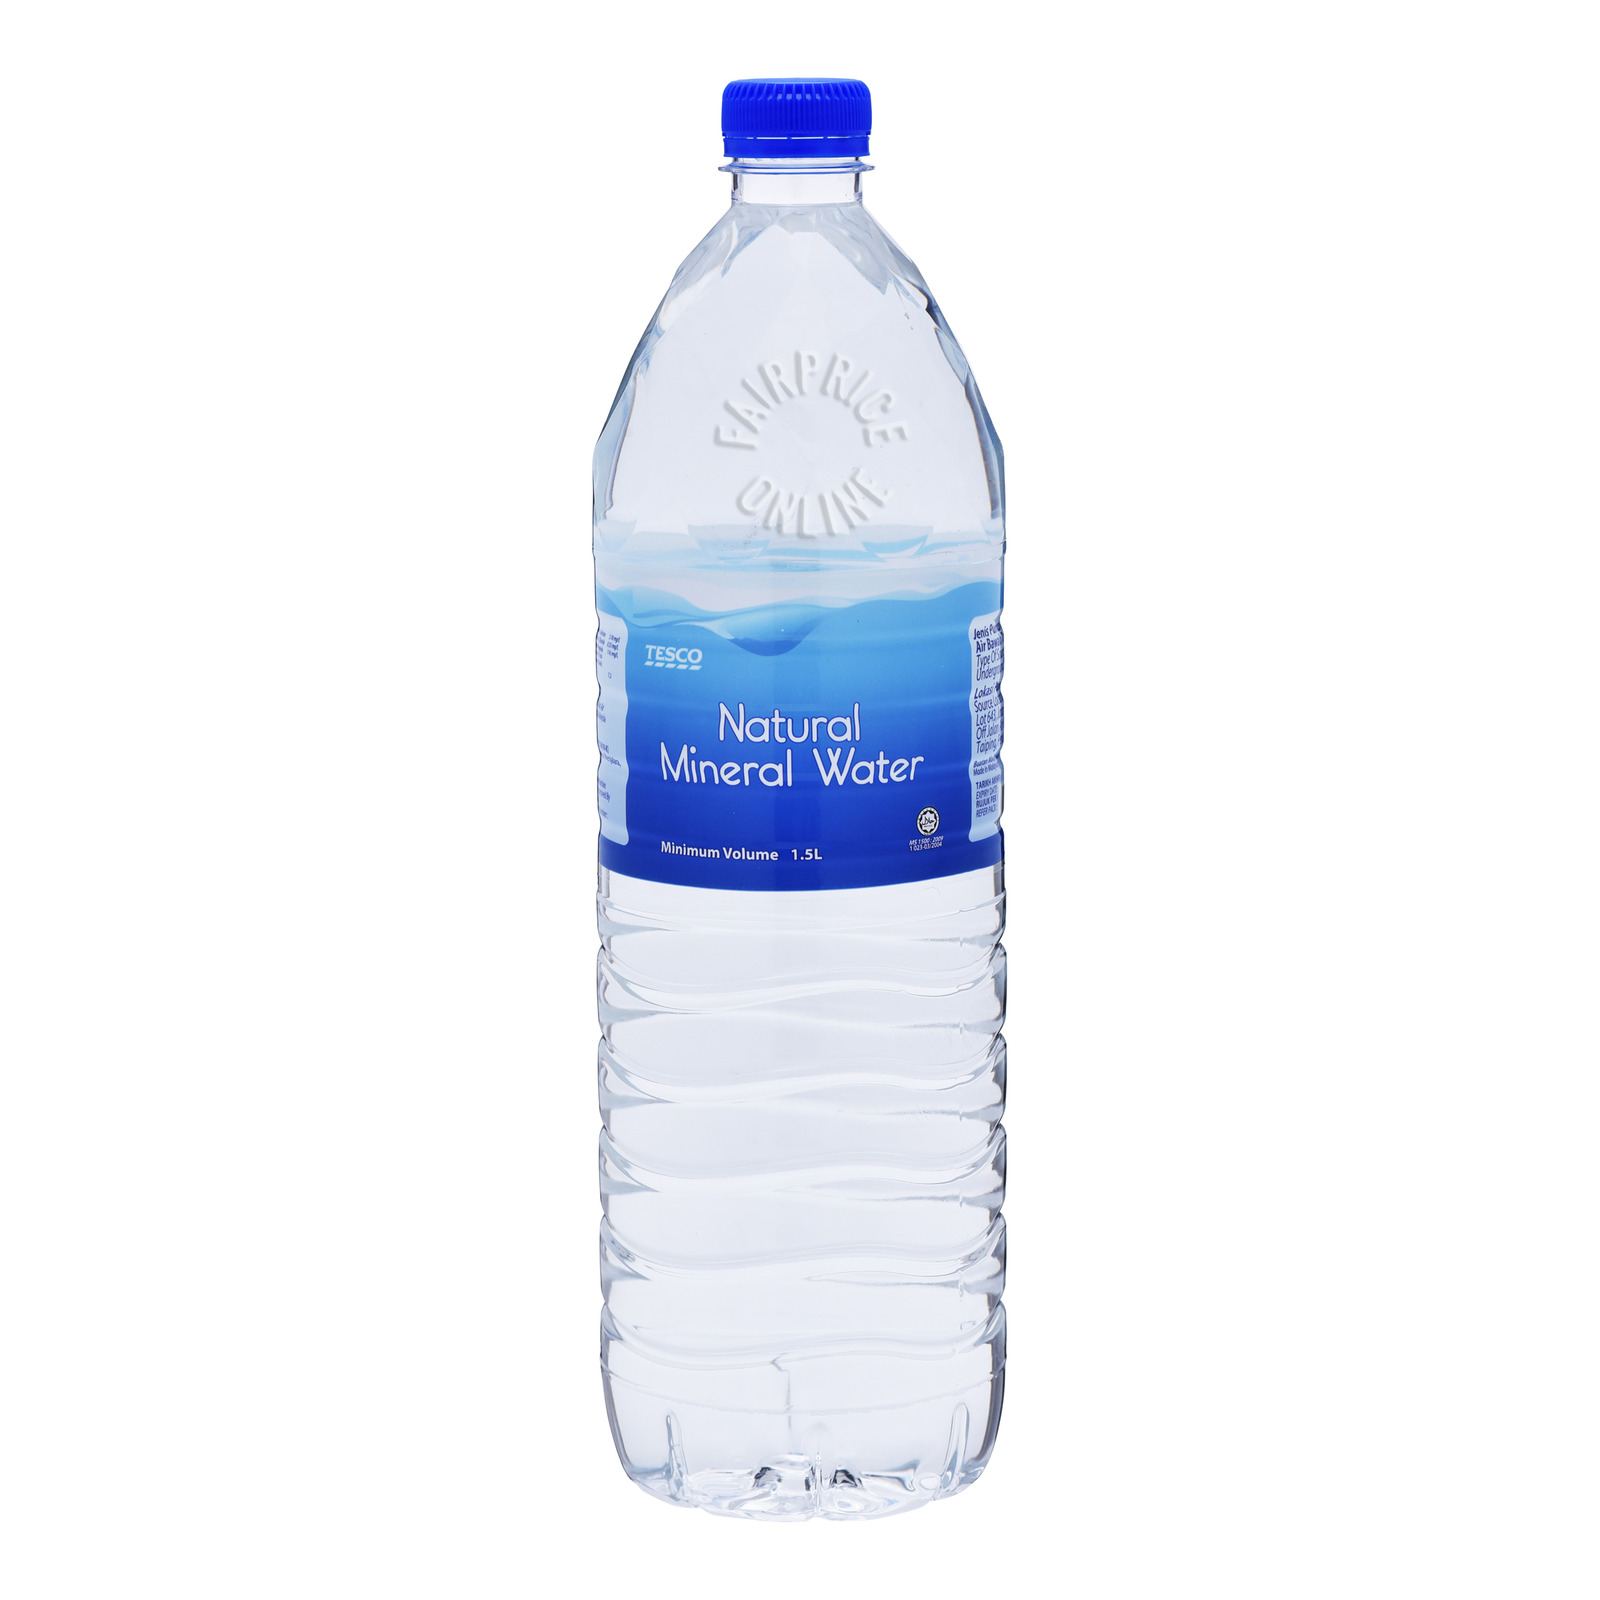 Tesco Natural Mineral Water